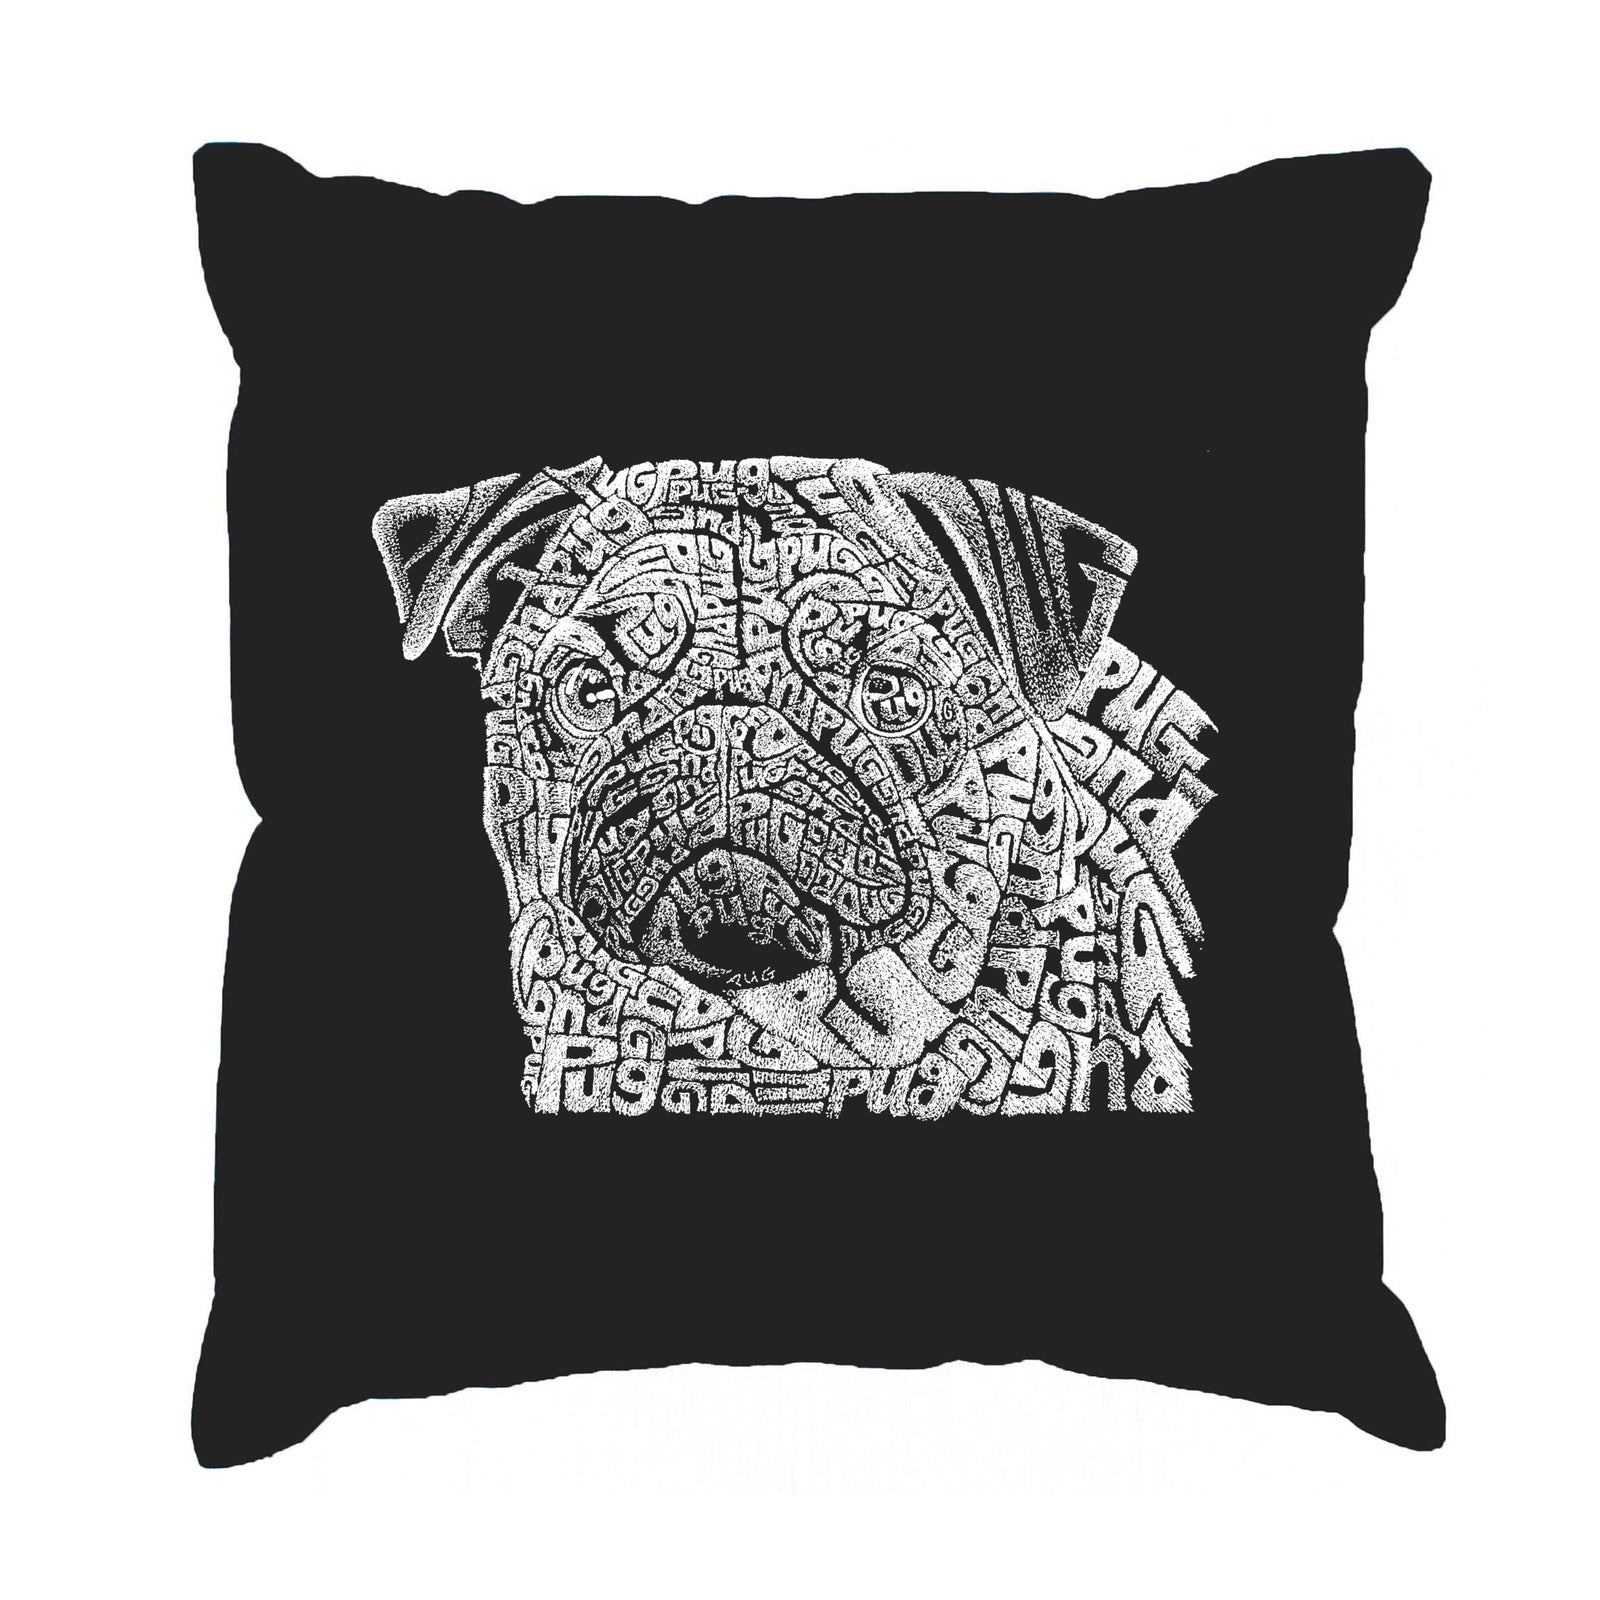 Throw Pillow Cover - Pug Face